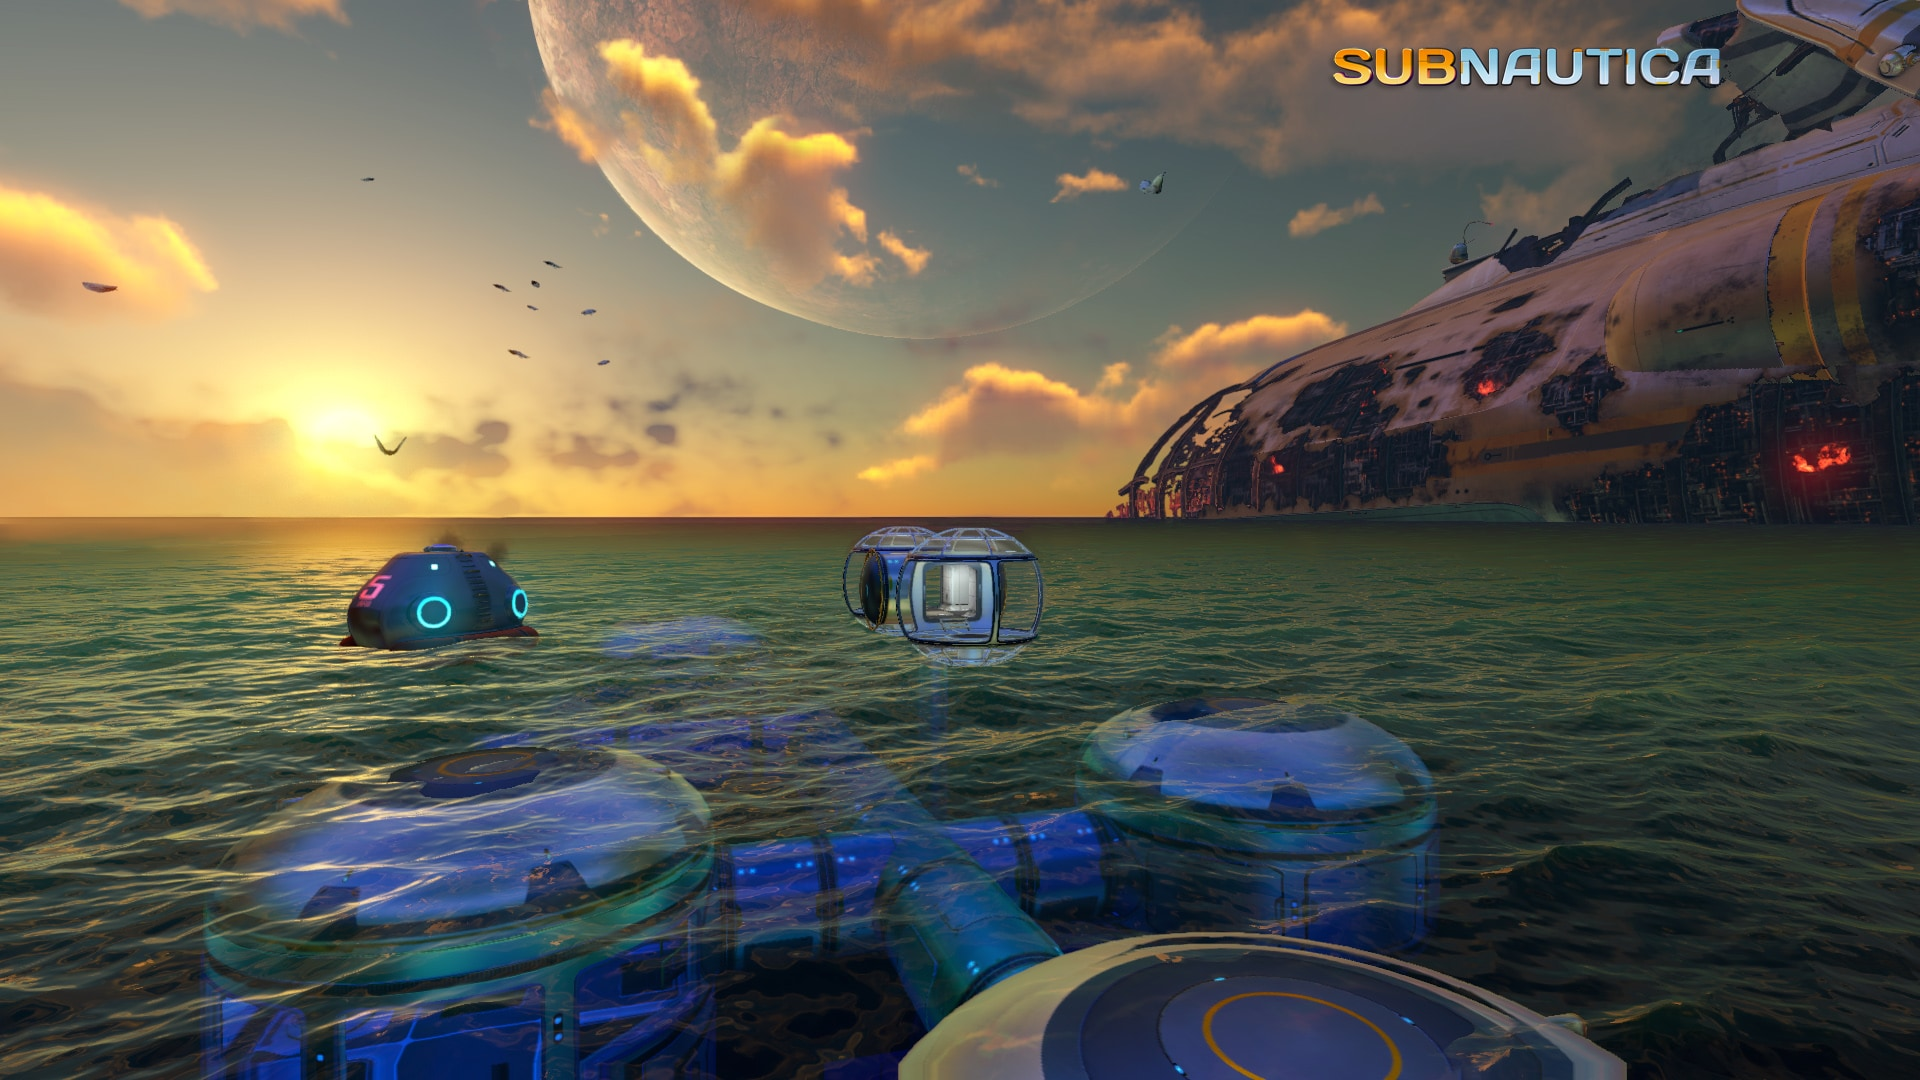 Subnautica Steam Gift GLOBAL - 4